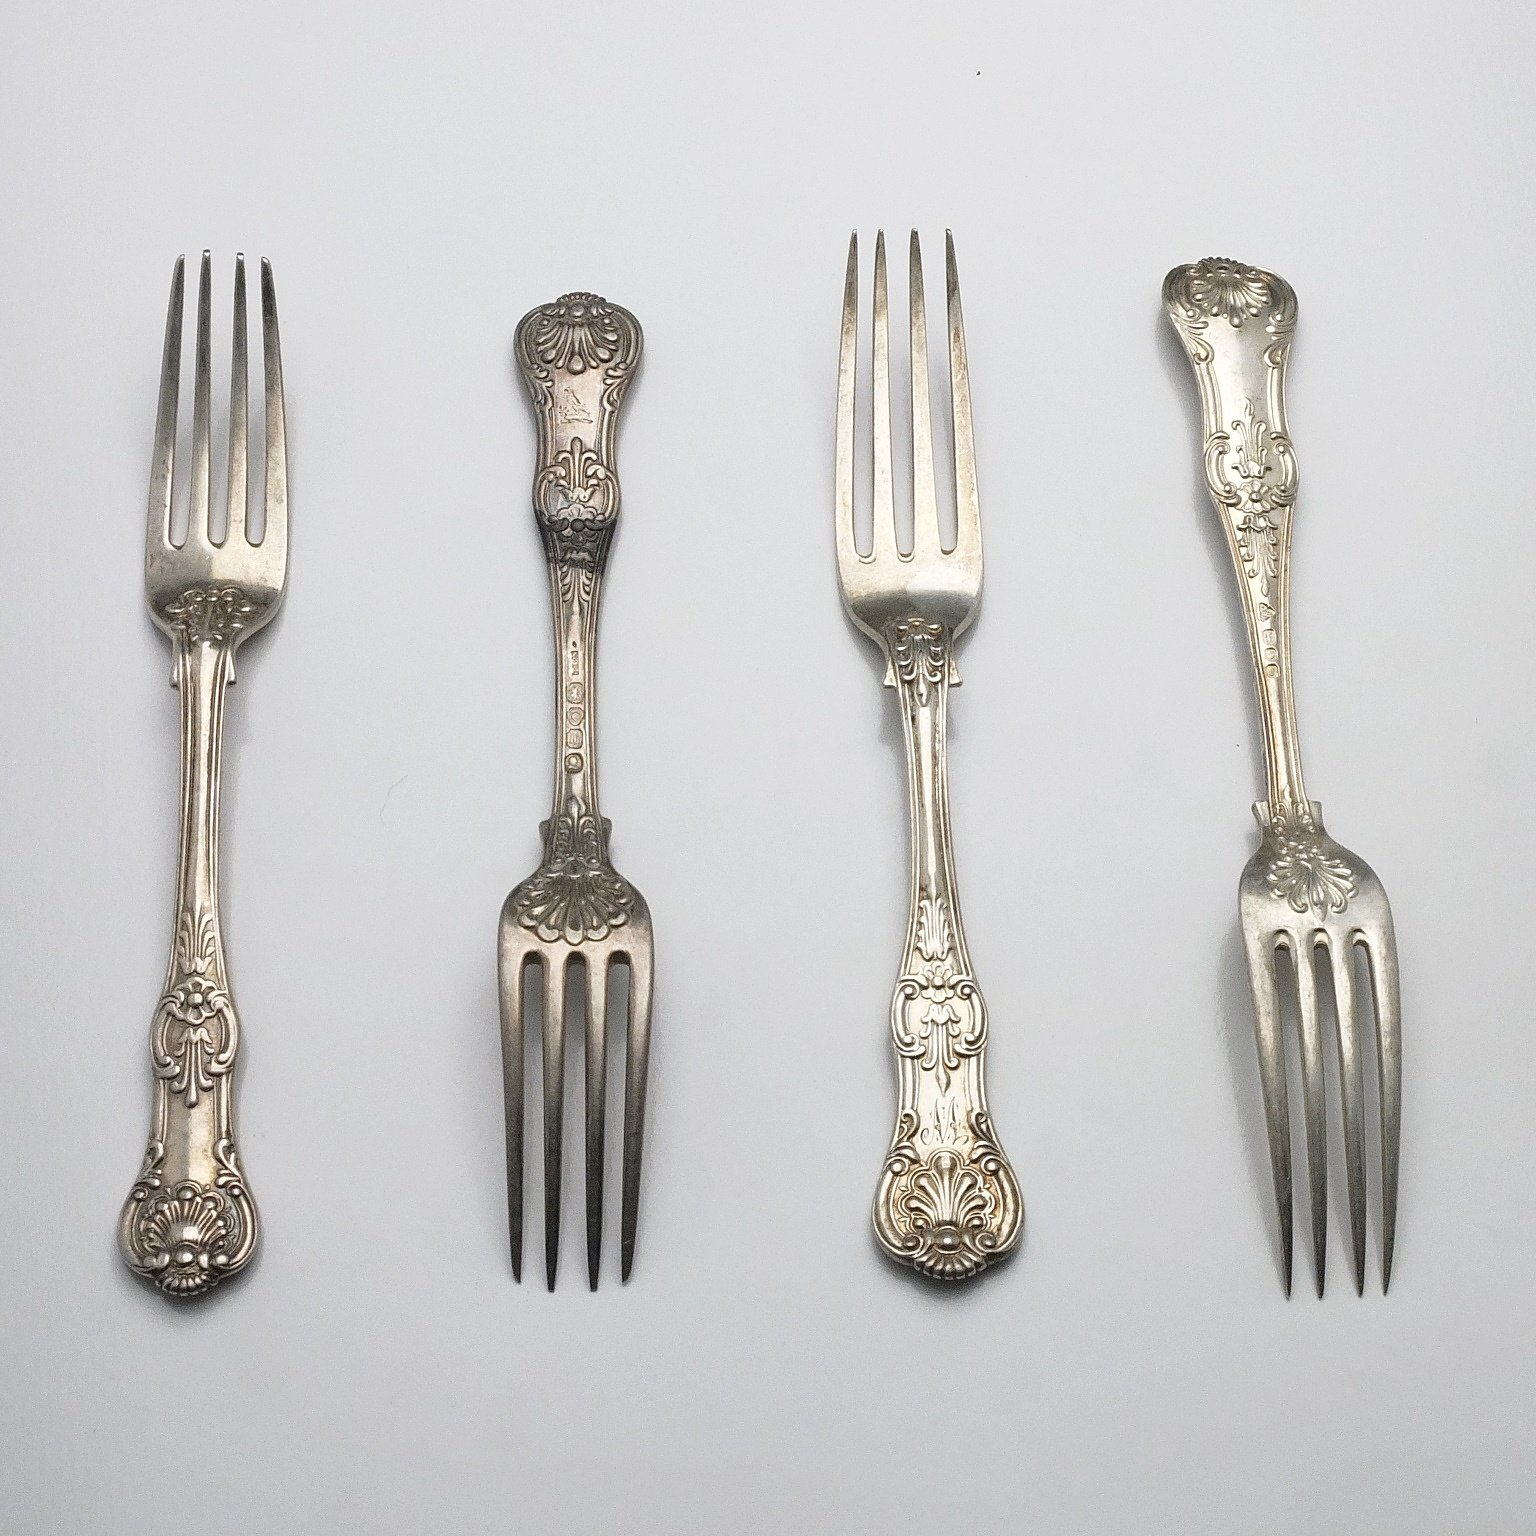 'Four Sterling Silver Kings Pattern Entree Forks 1828, 1856, 1904 ,1964'